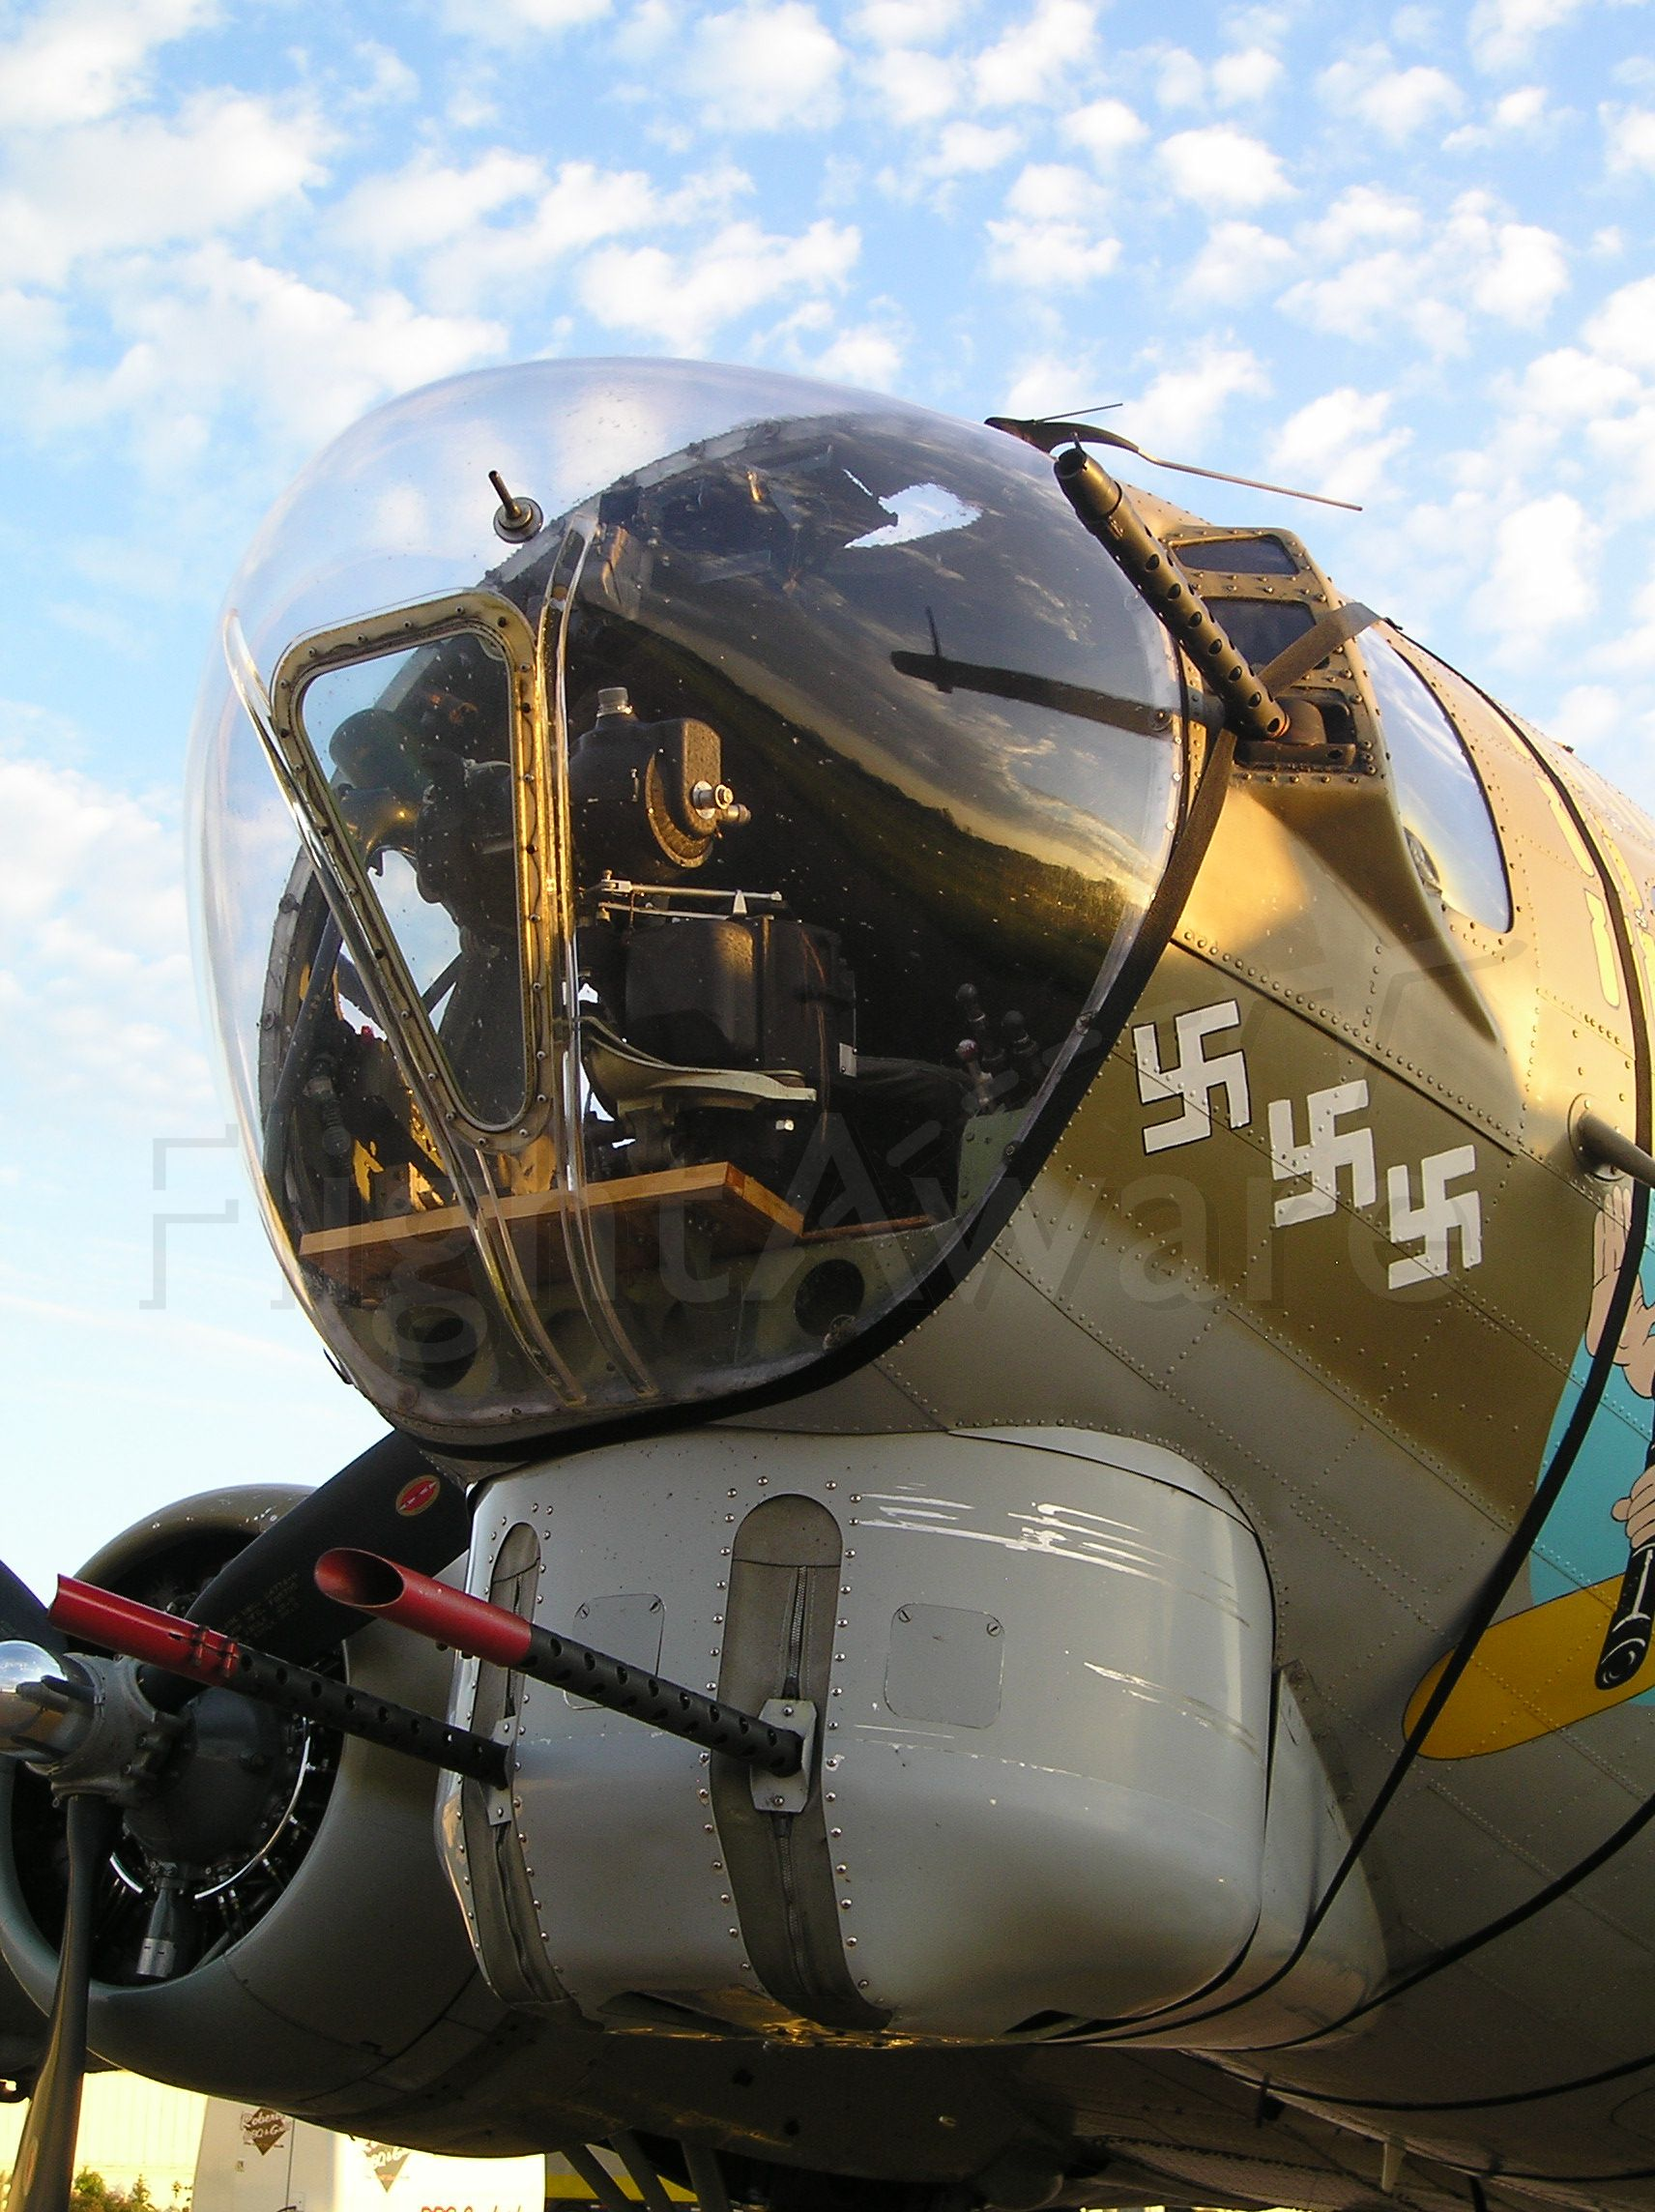 Boeing B-17 Flying Fortress — - Dawn on the Collings Foundation B-17, 7-12-08